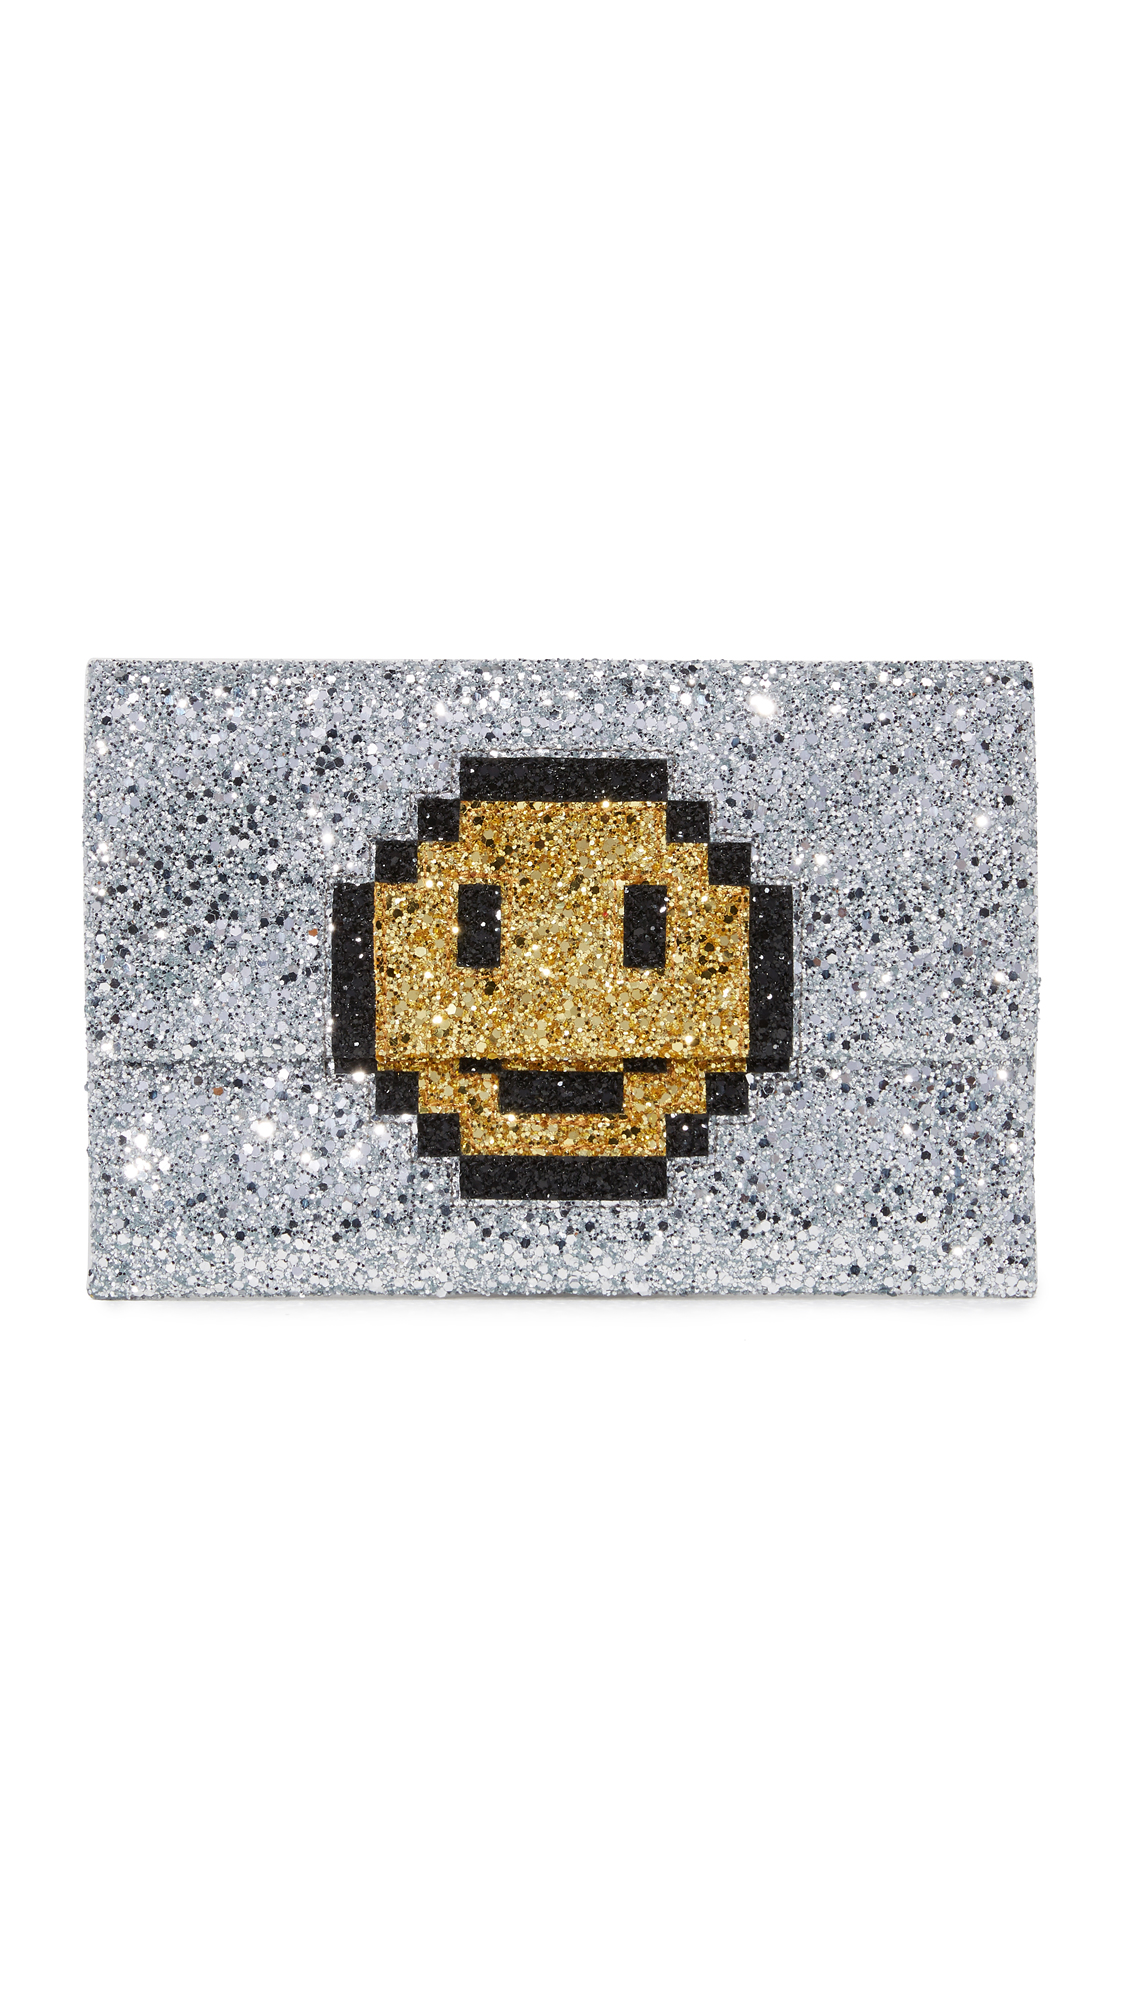 A smiley face adds a playful touch to this slim, glitter coated Anya Hindmarch clutch. Magnetic closures. Leather lined interior with 1 pocket. Dust bag included. Fabric: Glitter coated weave. Weight: 8oz / 0.23kg. Imported, China. Measurements Height: 6.25